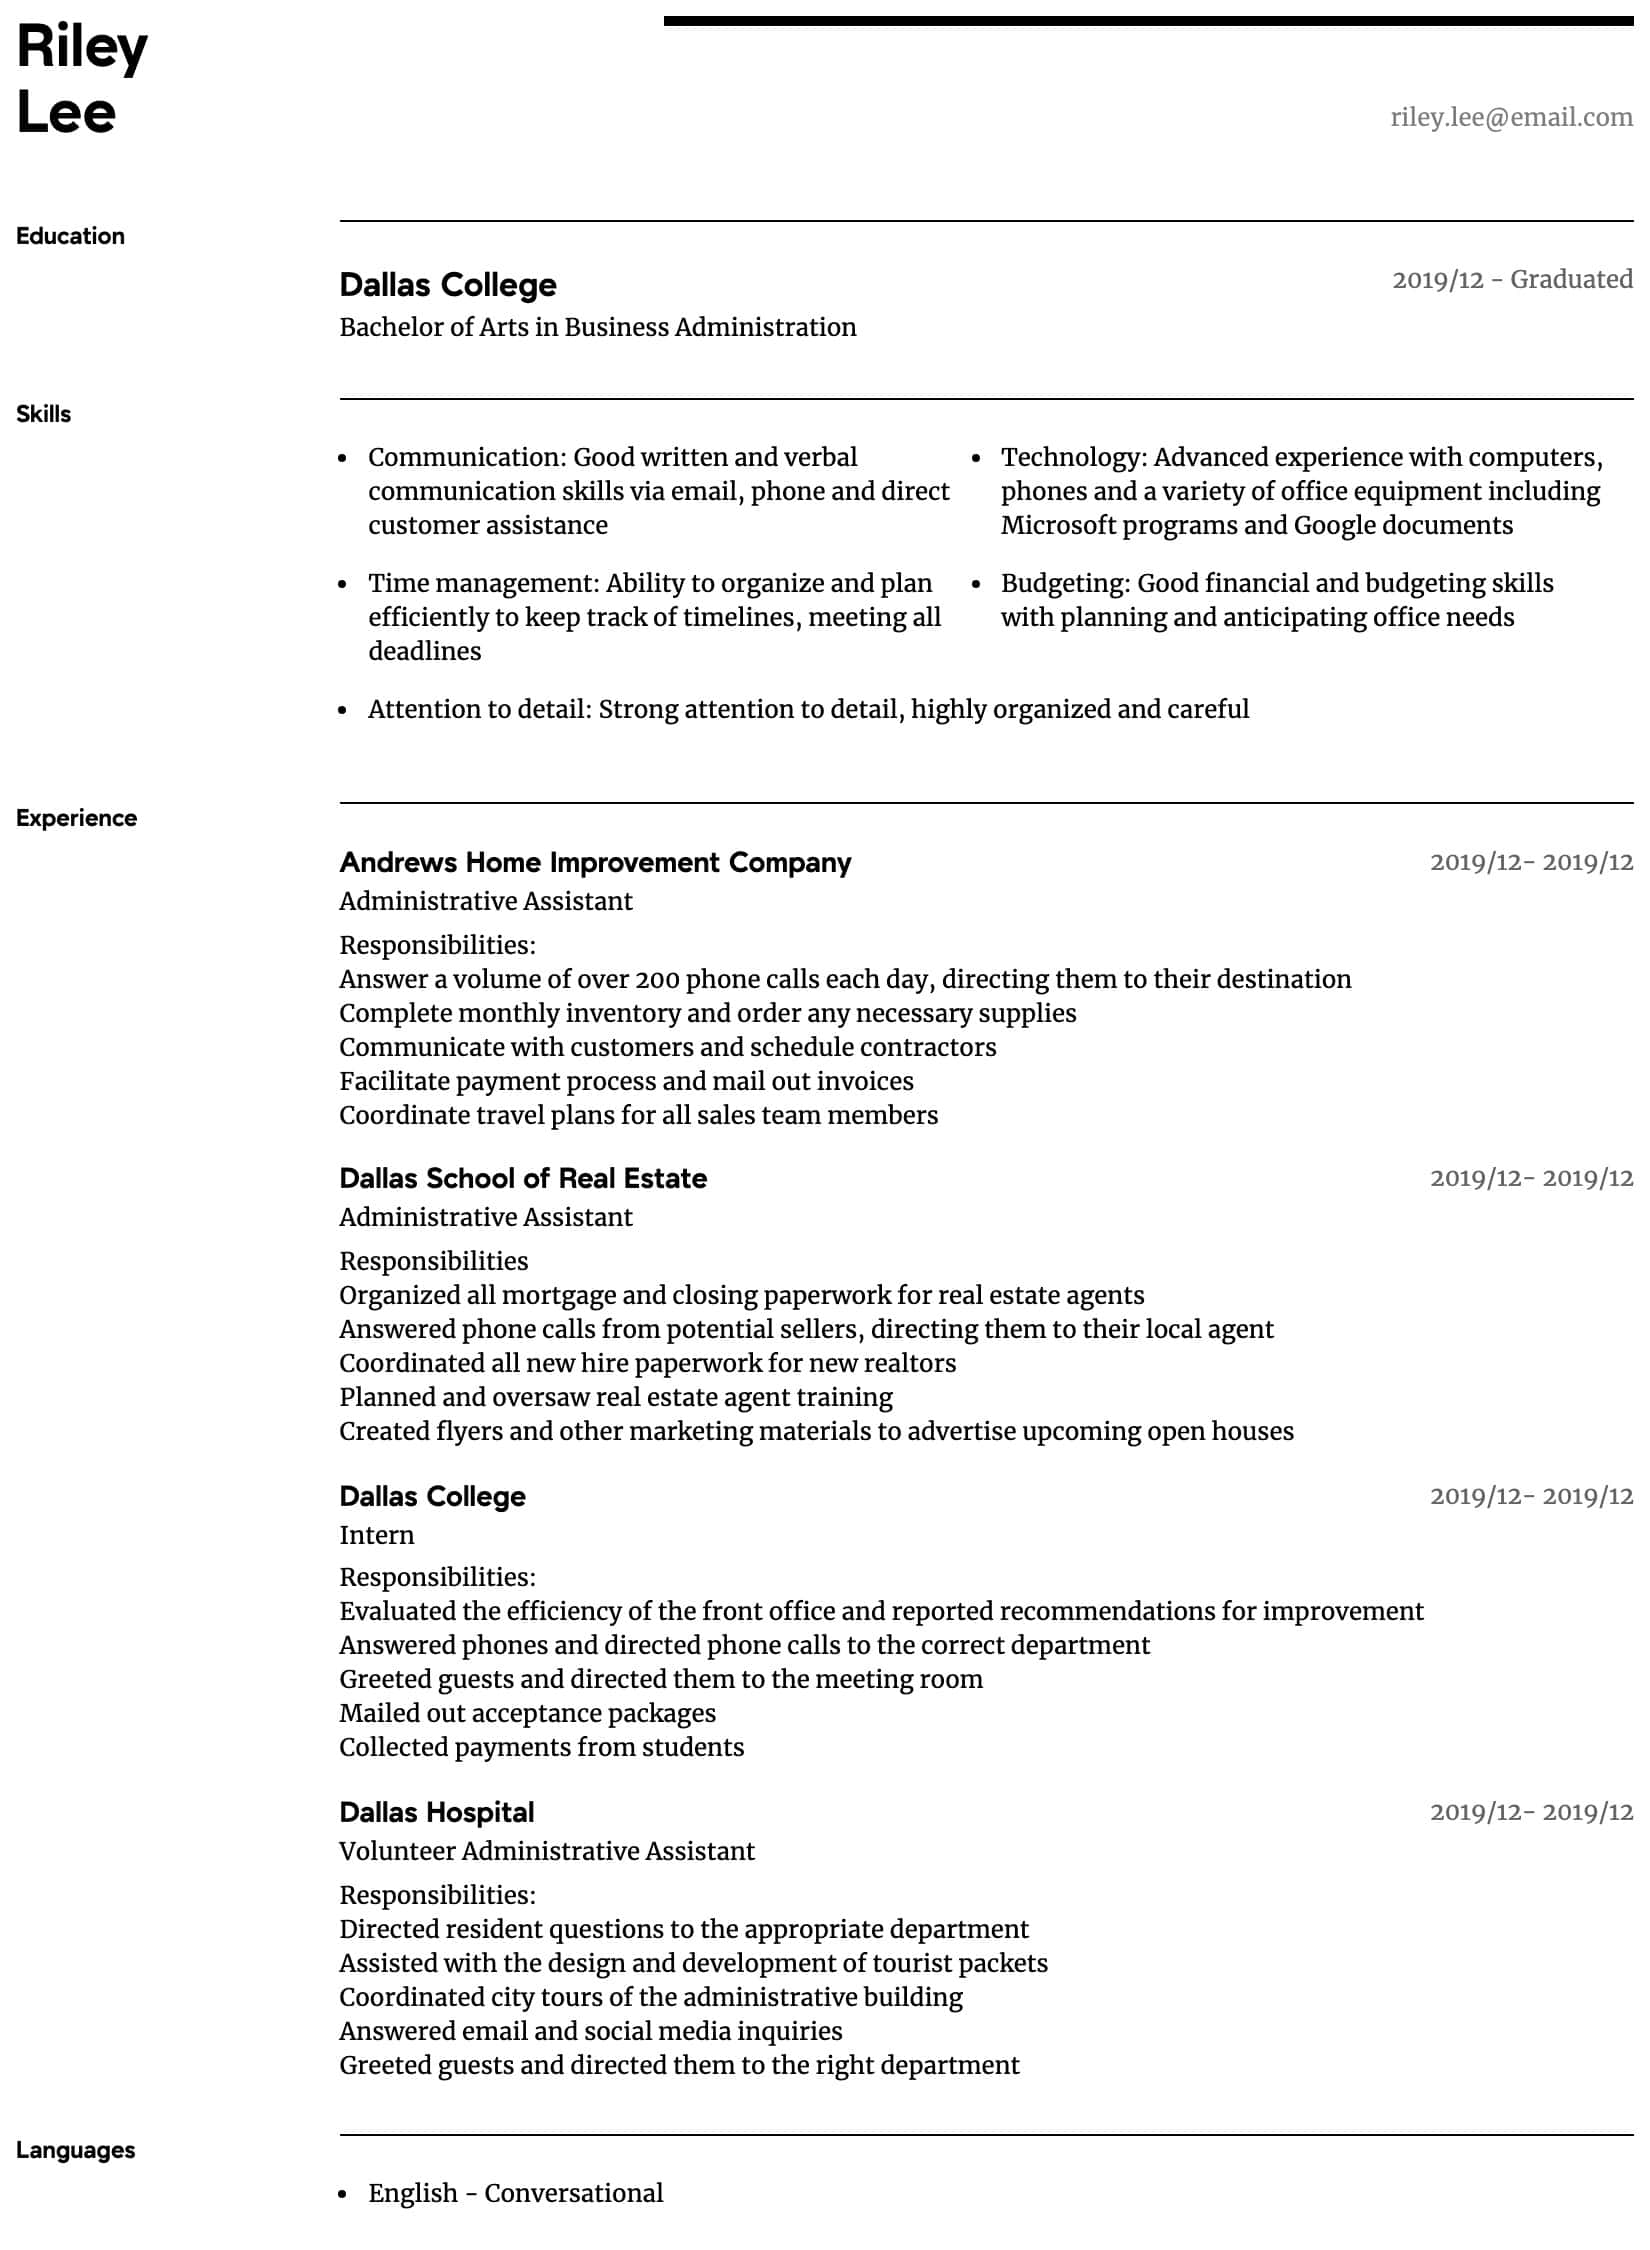 administrative assistant resume samples all experience levels healthcare intermediate Resume Healthcare Administrative Assistant Resume